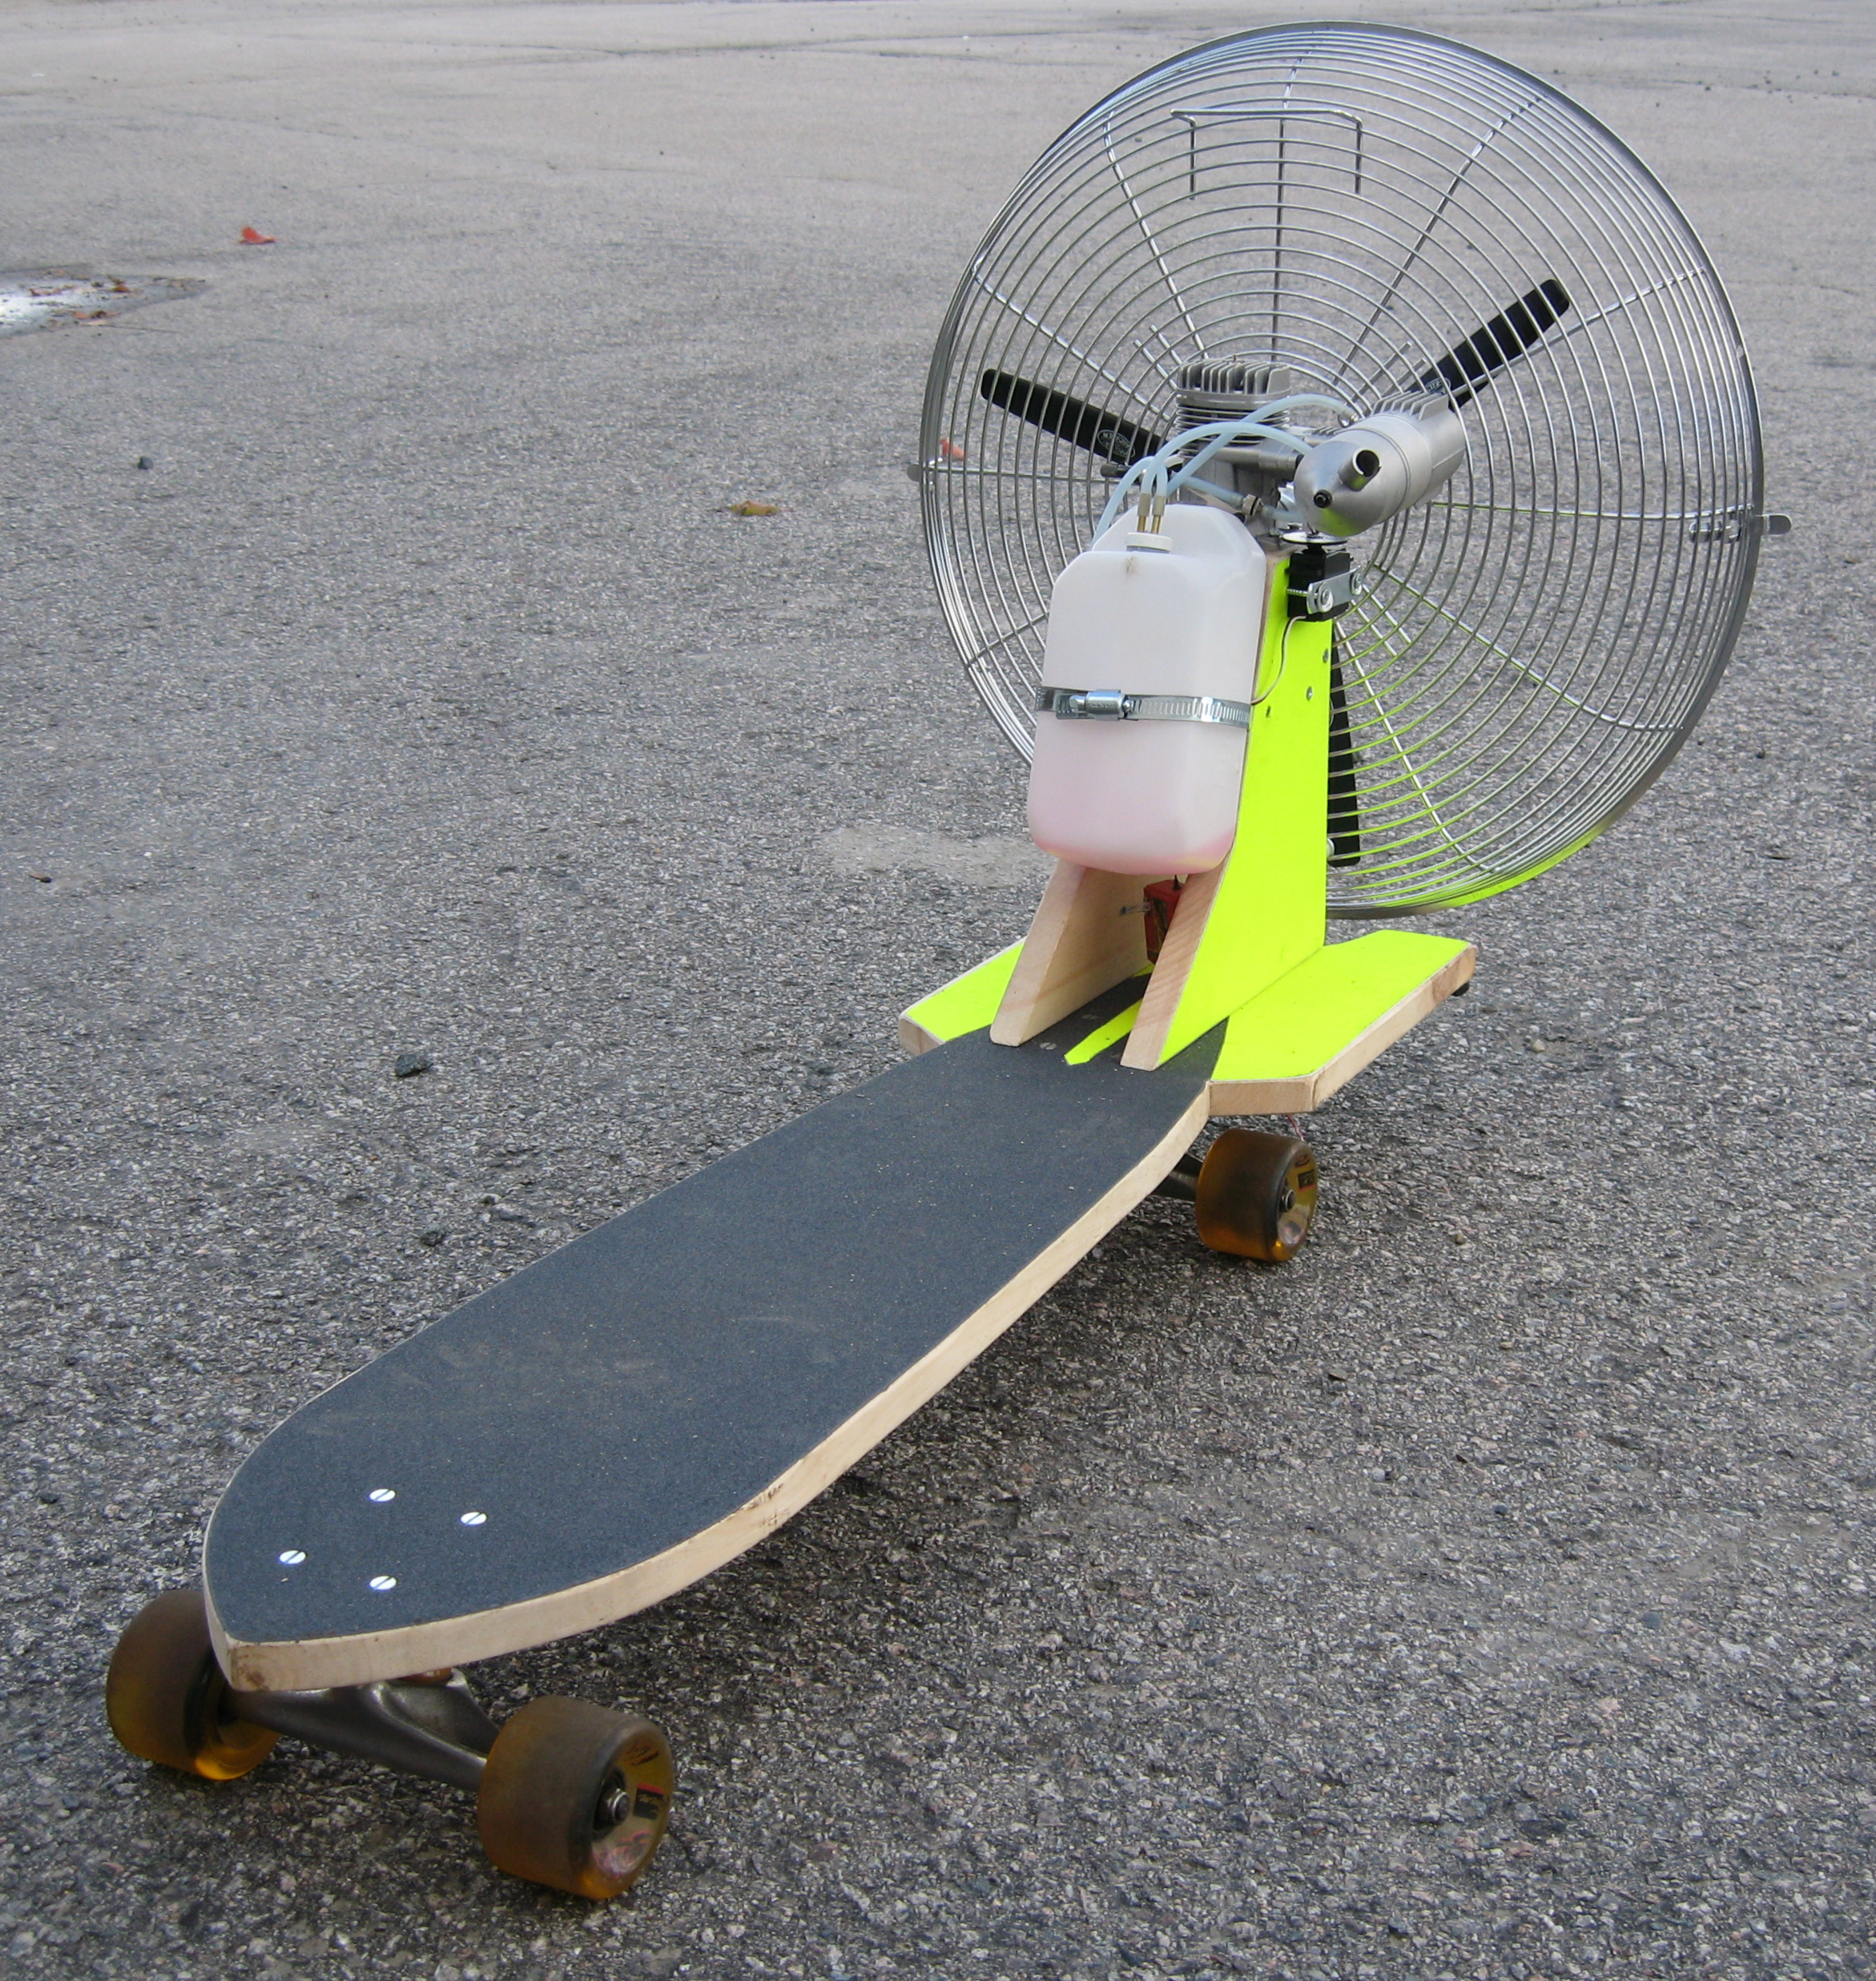 Propeller Powered Skateboard